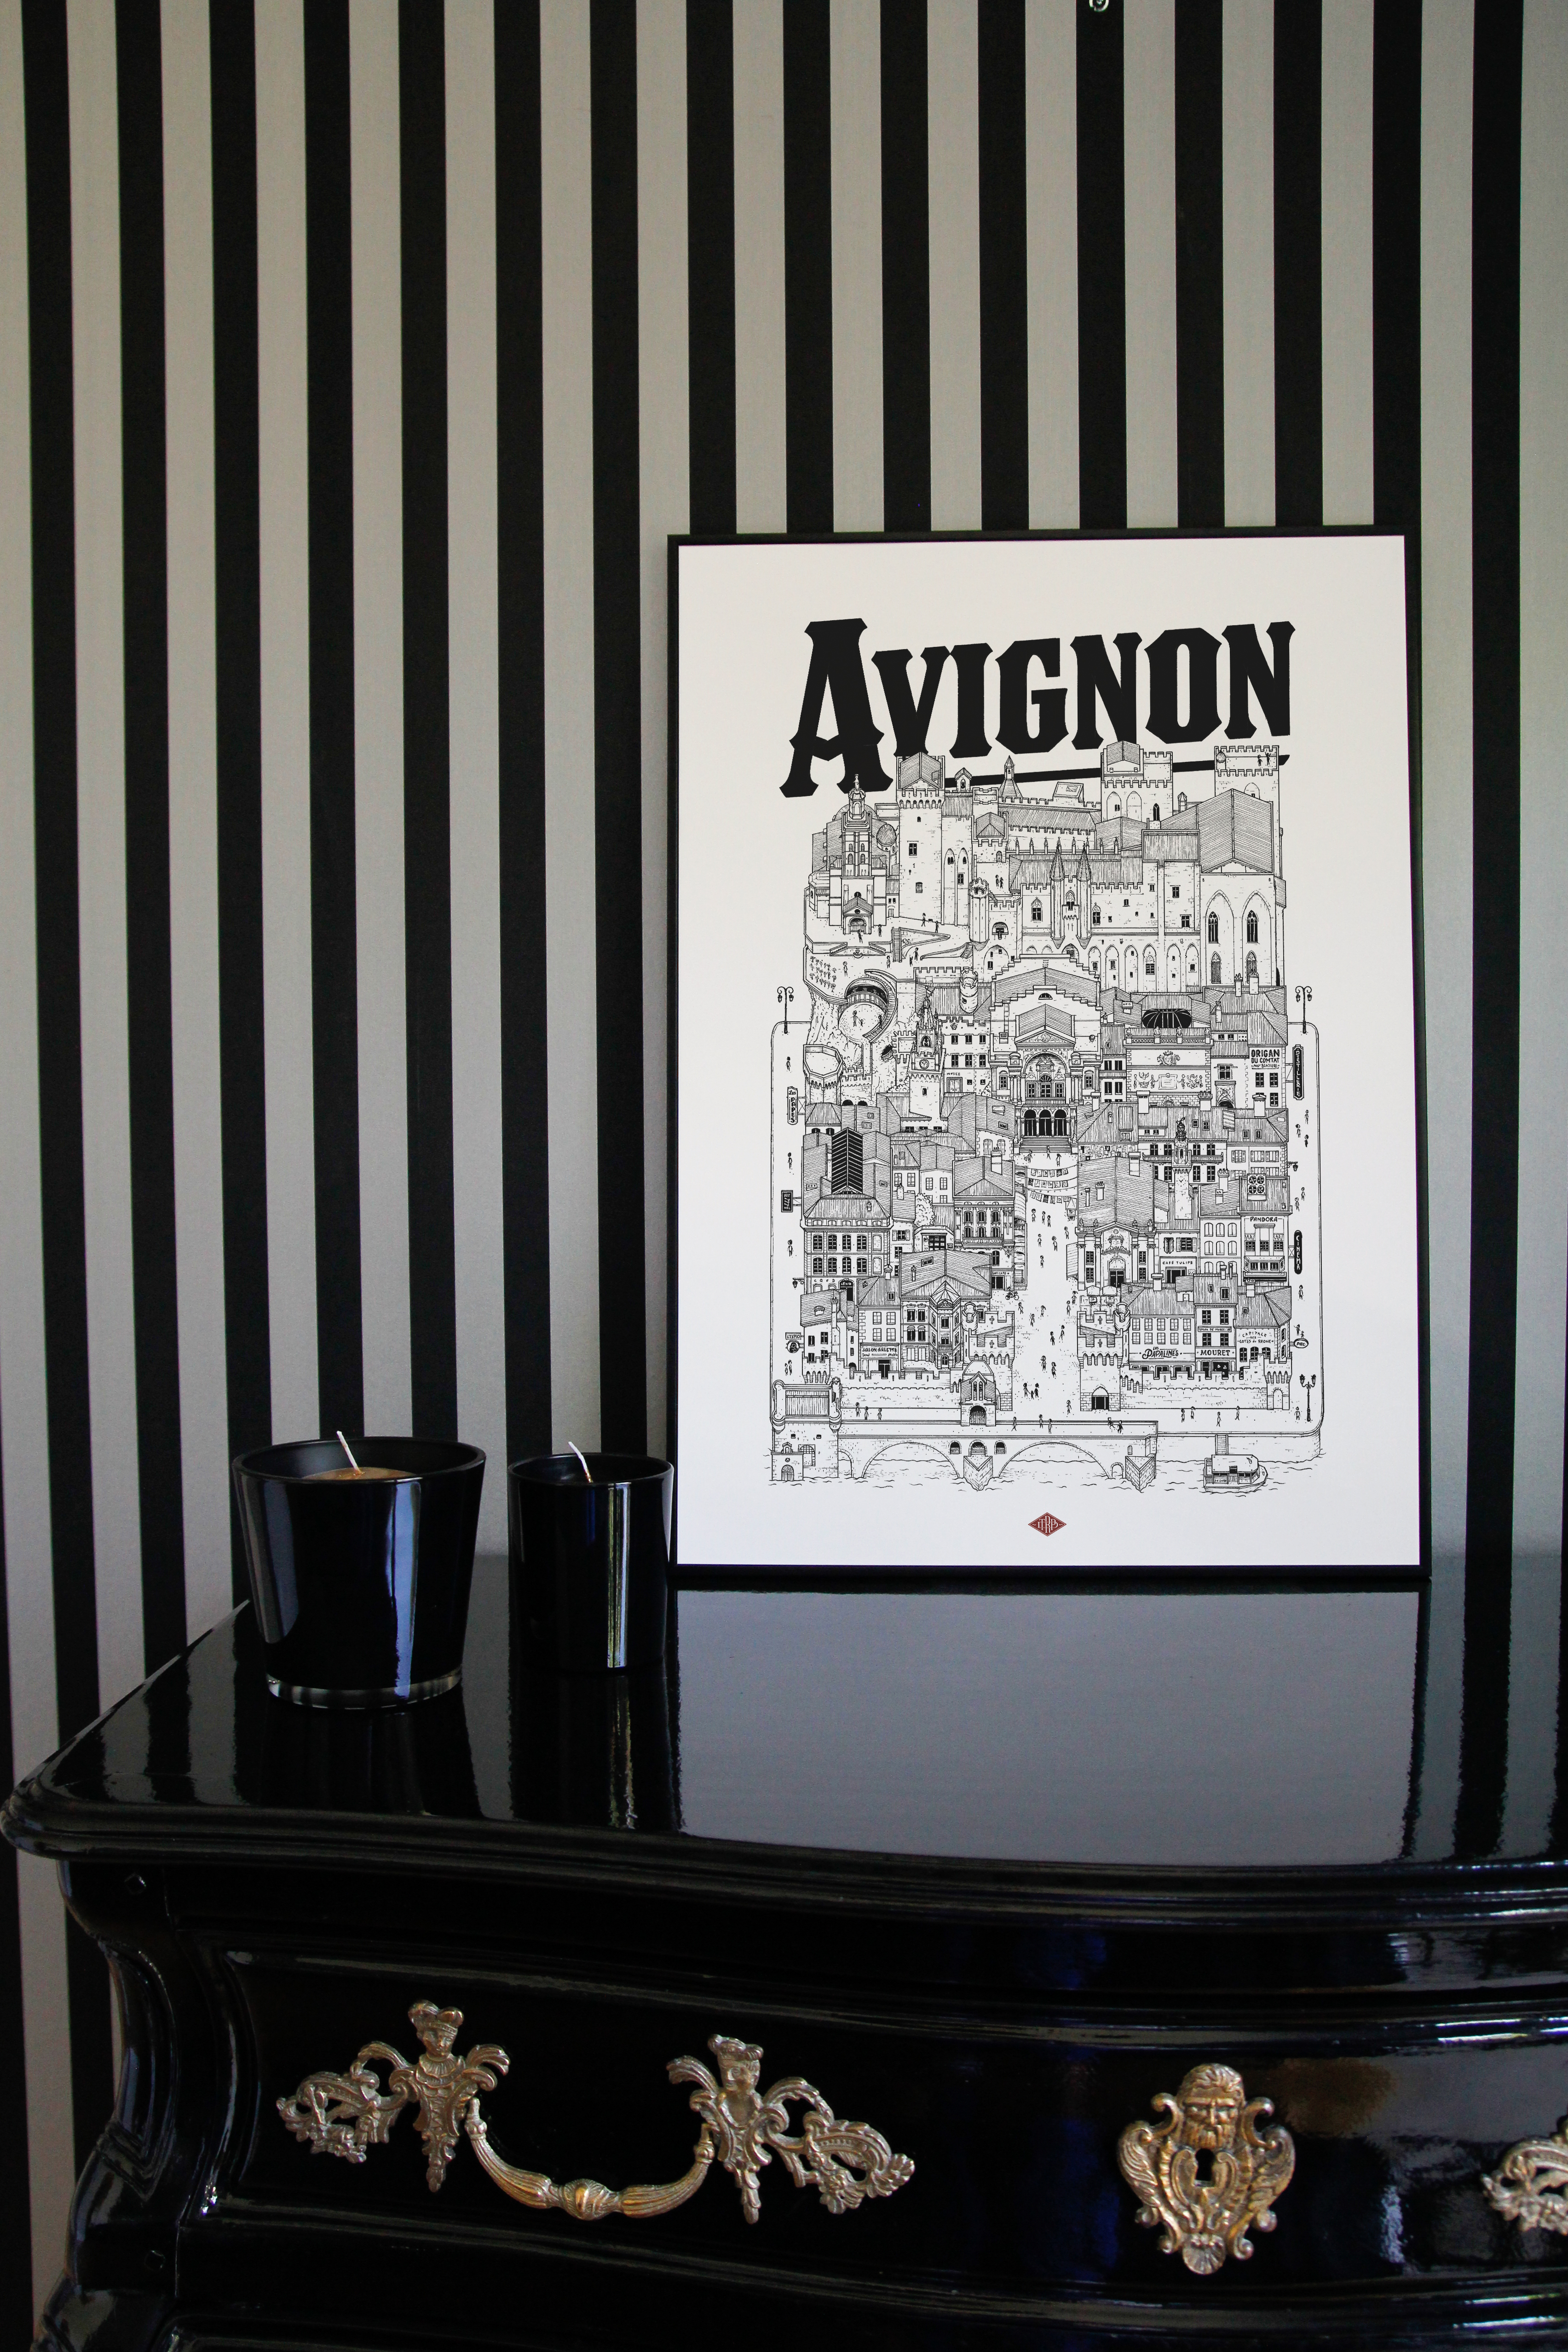 AVIGNON Docteur Paper ILLUSTRATION ILLUSTRATEUR VILLE AFFICHE CARTE